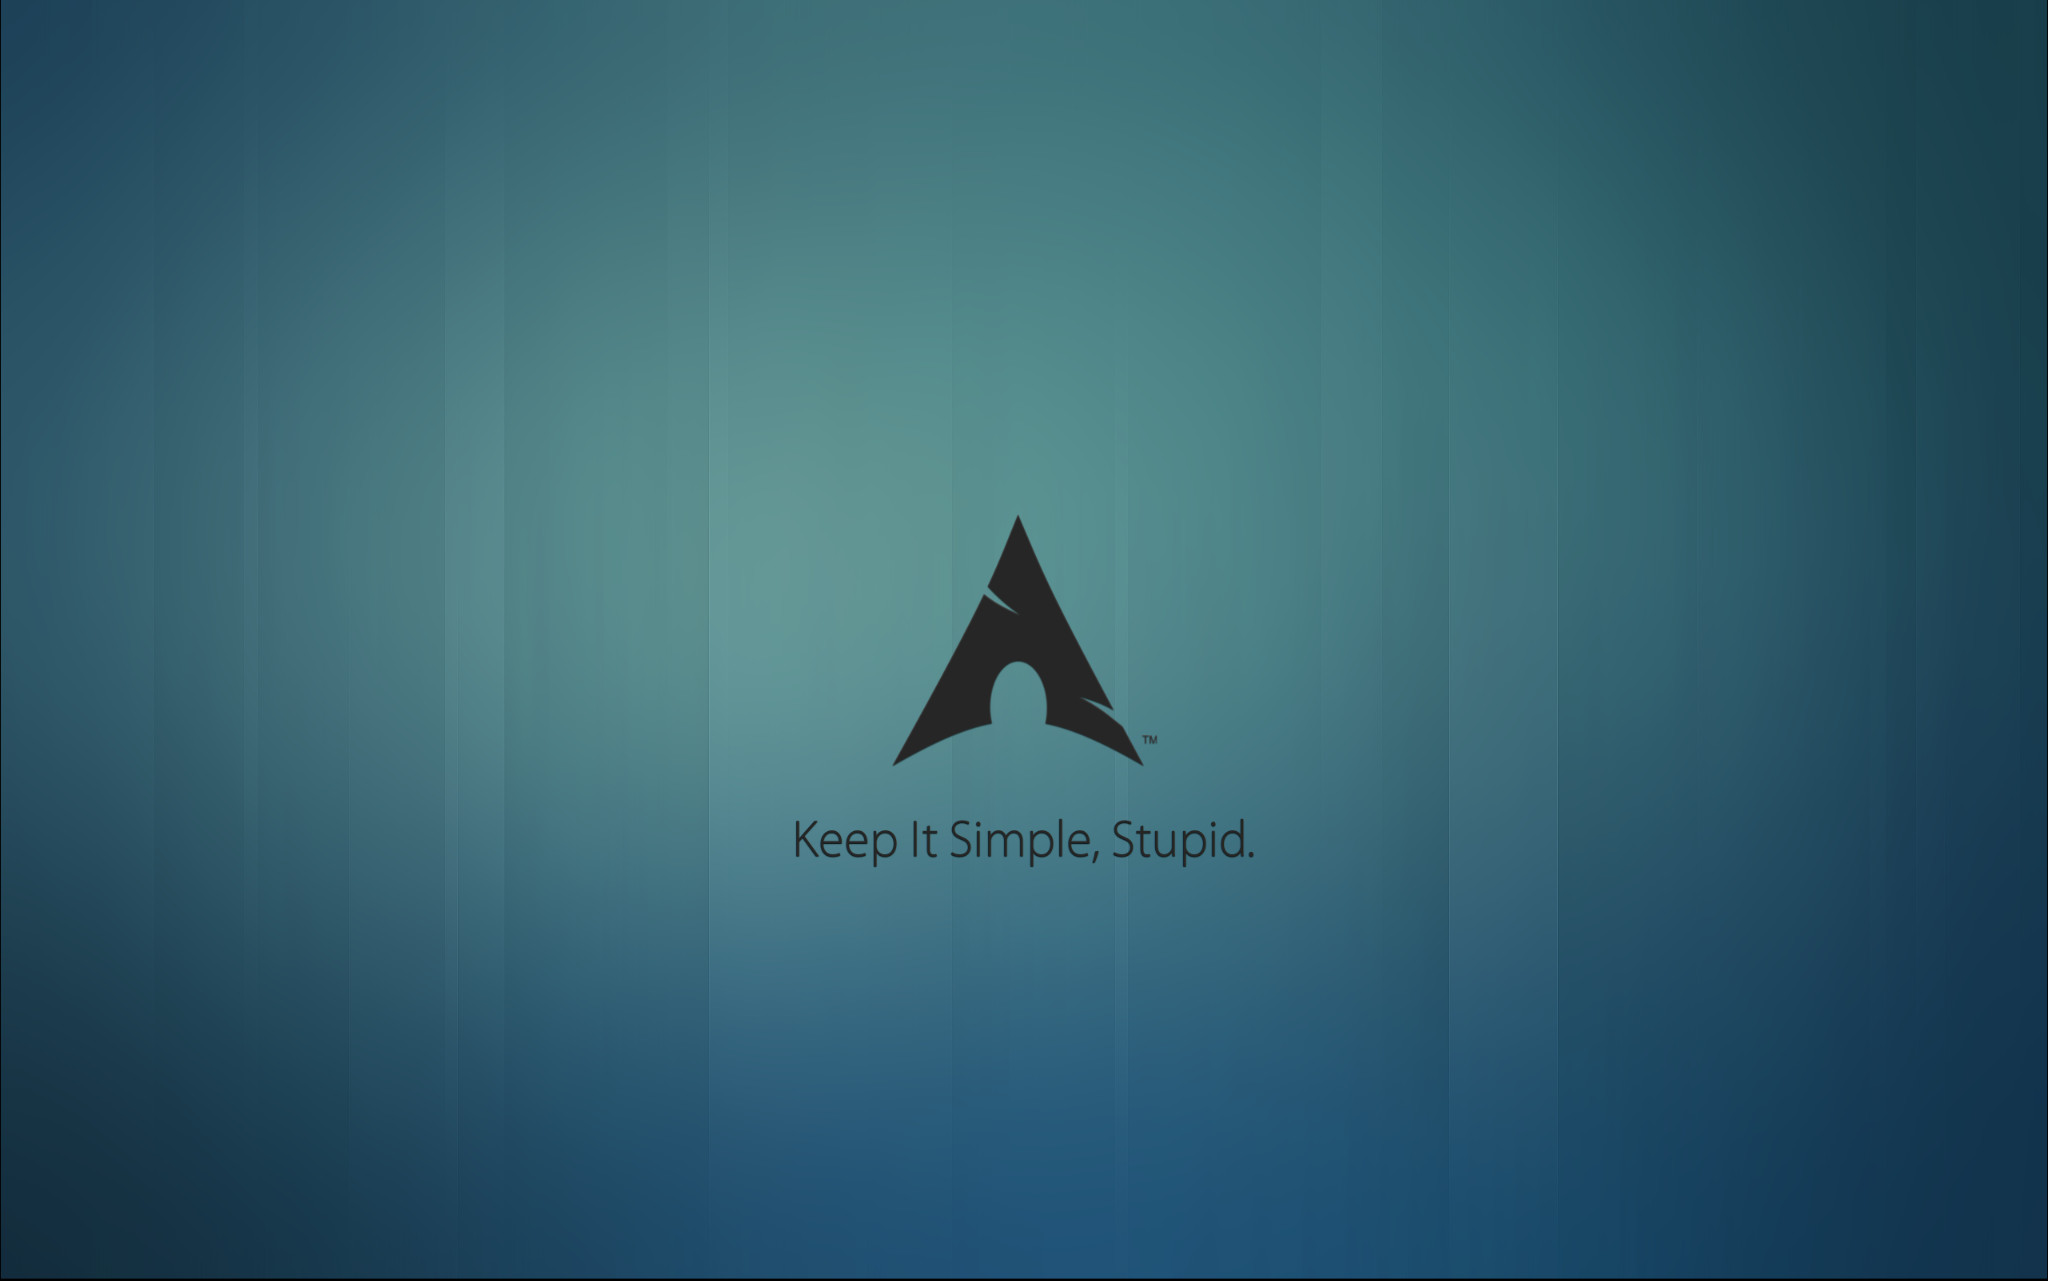 Arch Linux wallpaper. Keep it simple, stupid